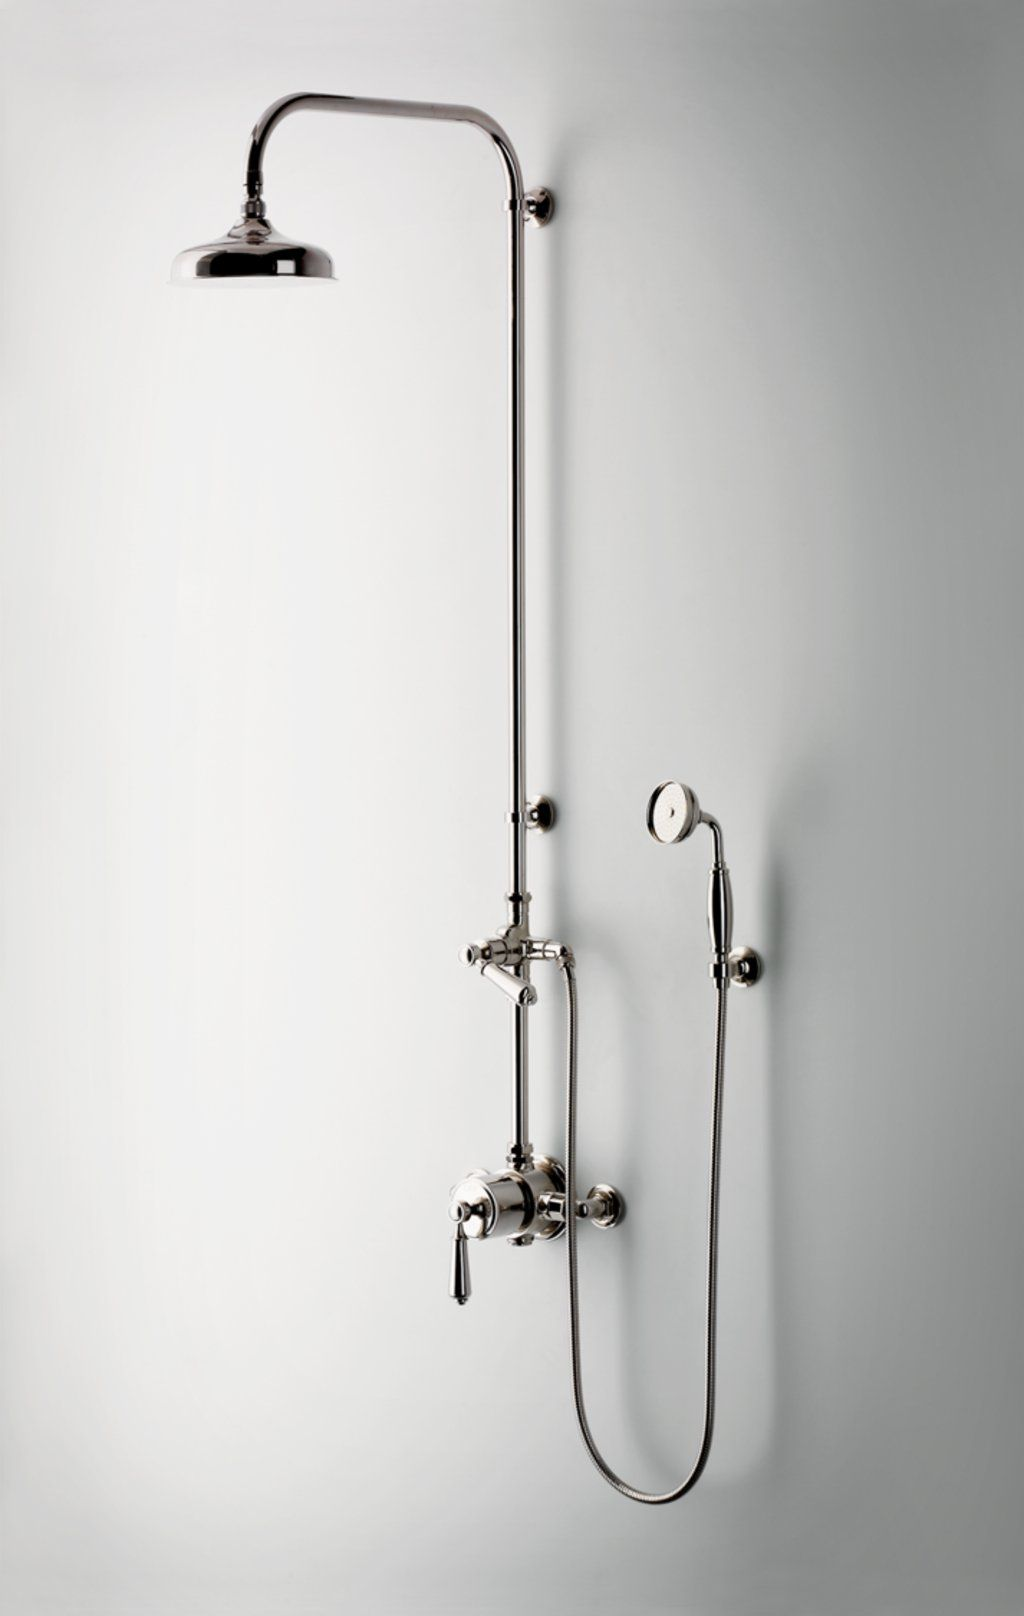 Best Shower Systems Reviews In 2020 With Images Shower